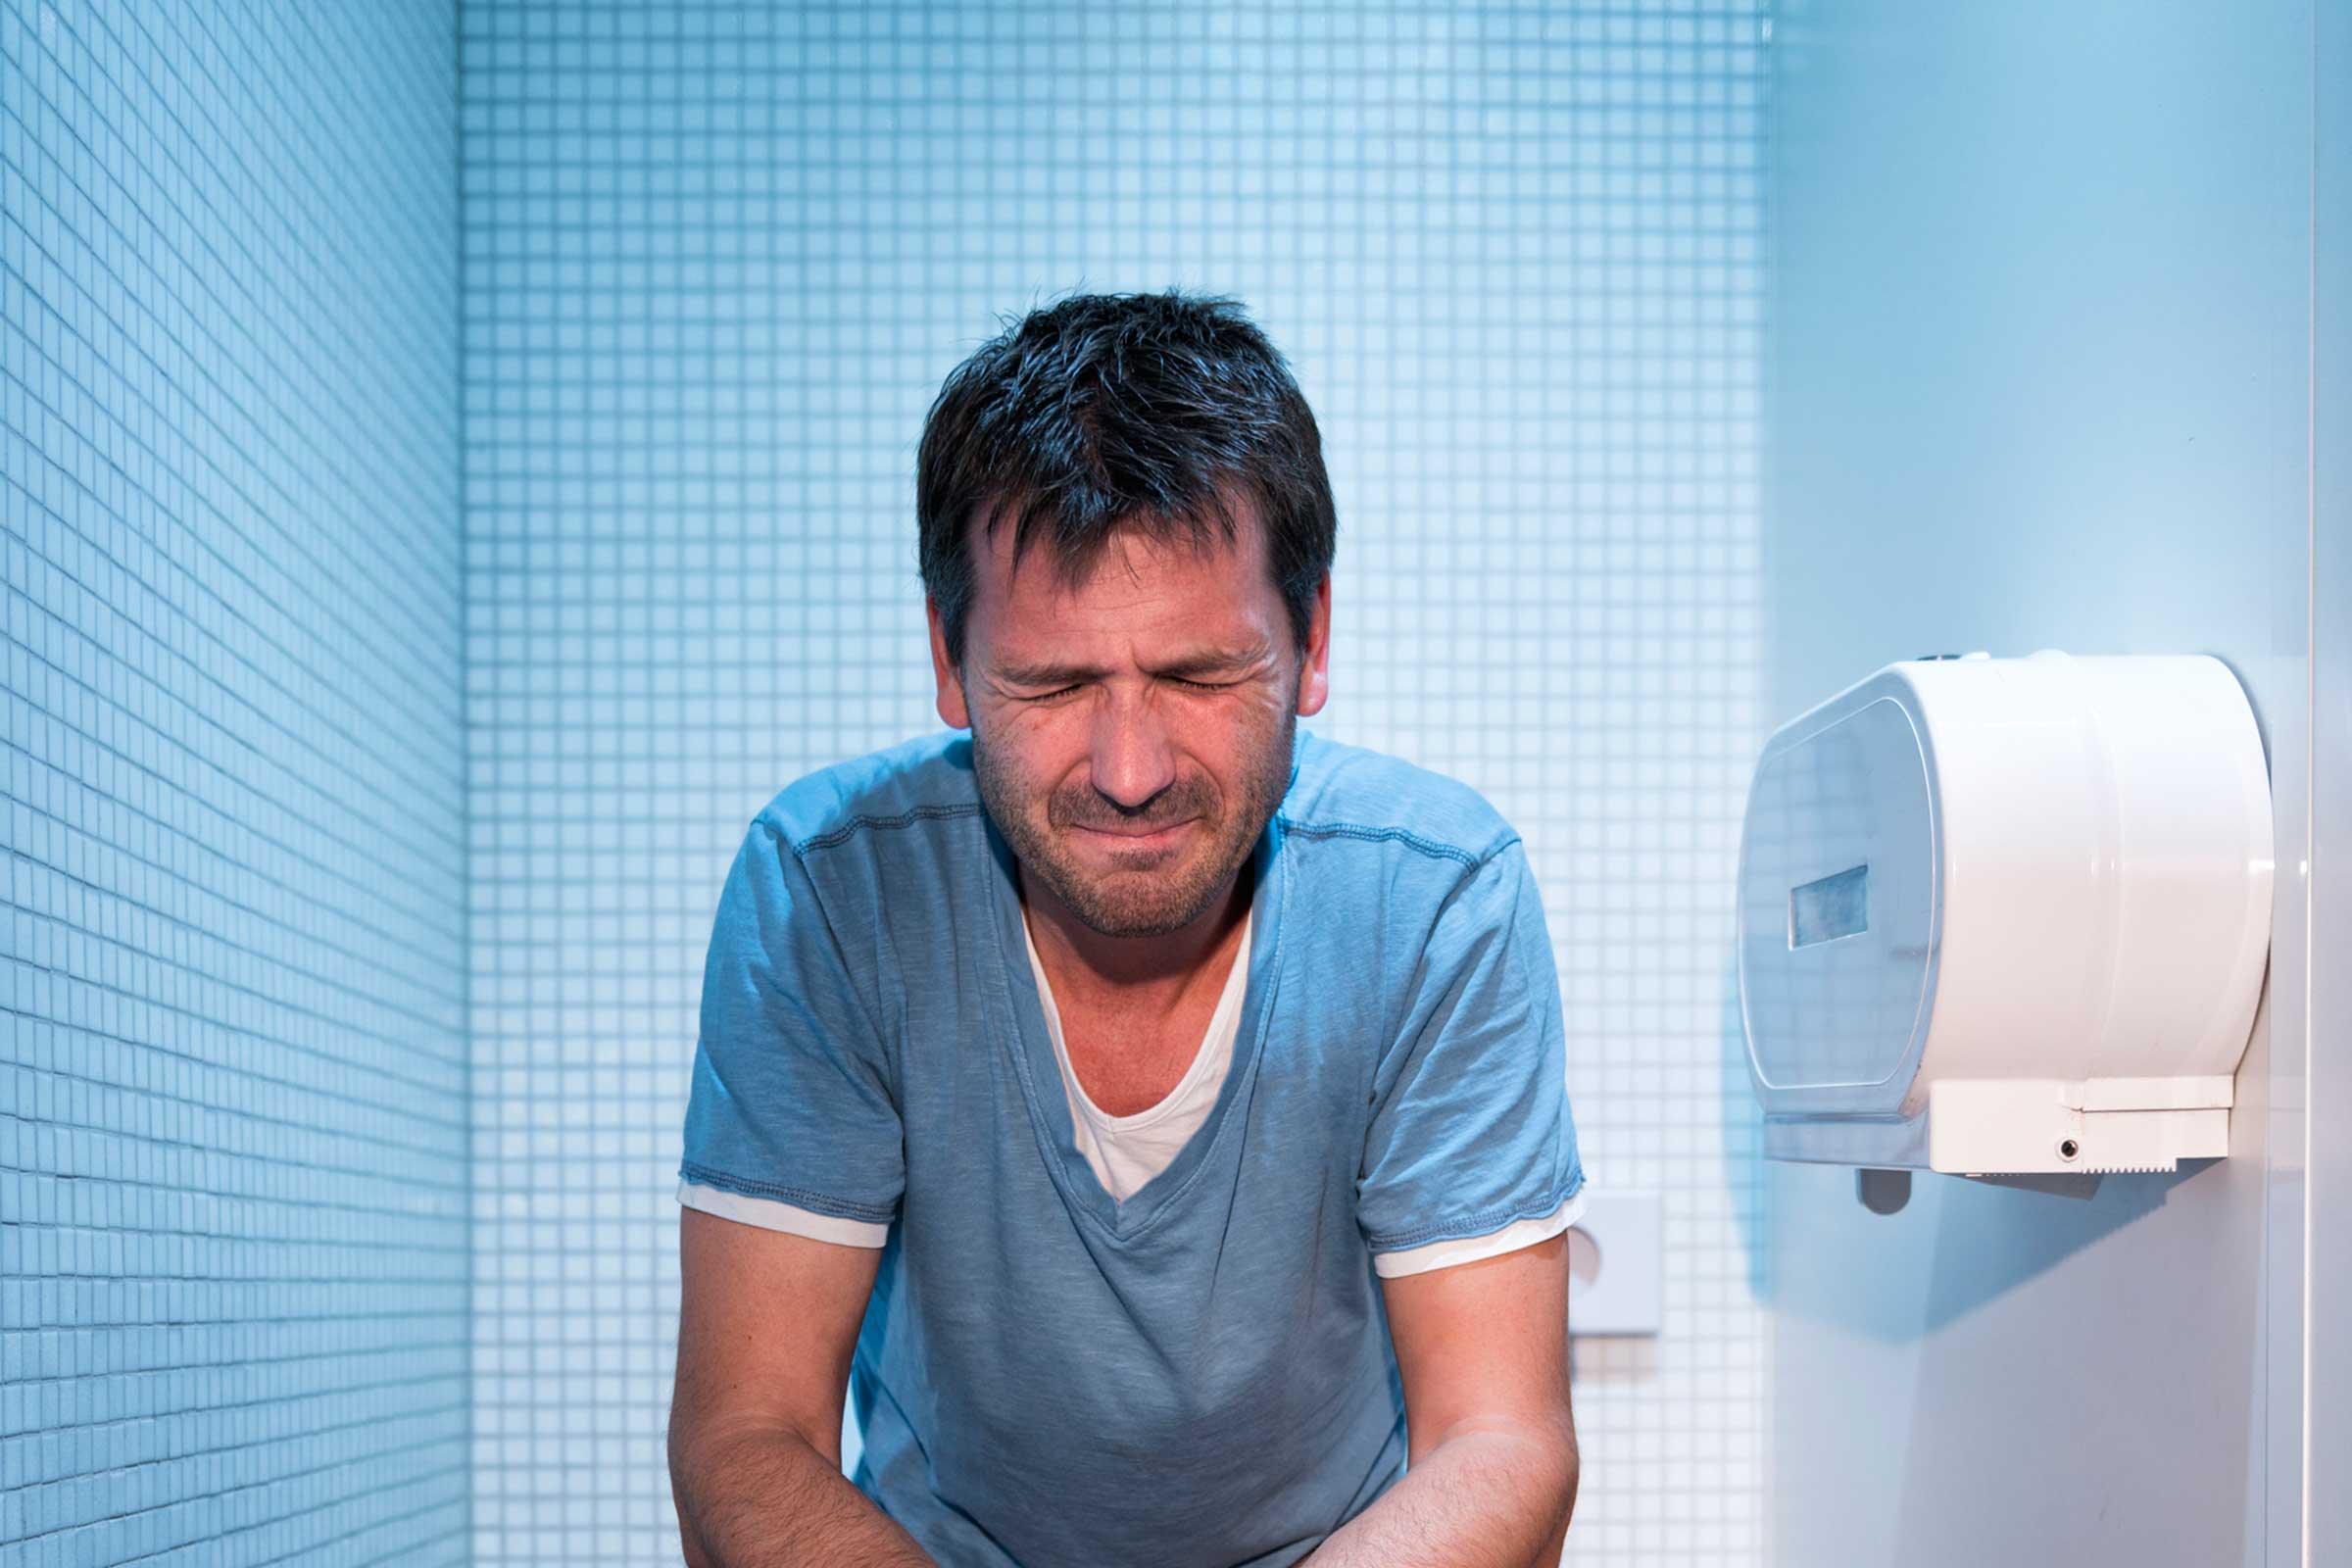 Image result for man sitting on toilet